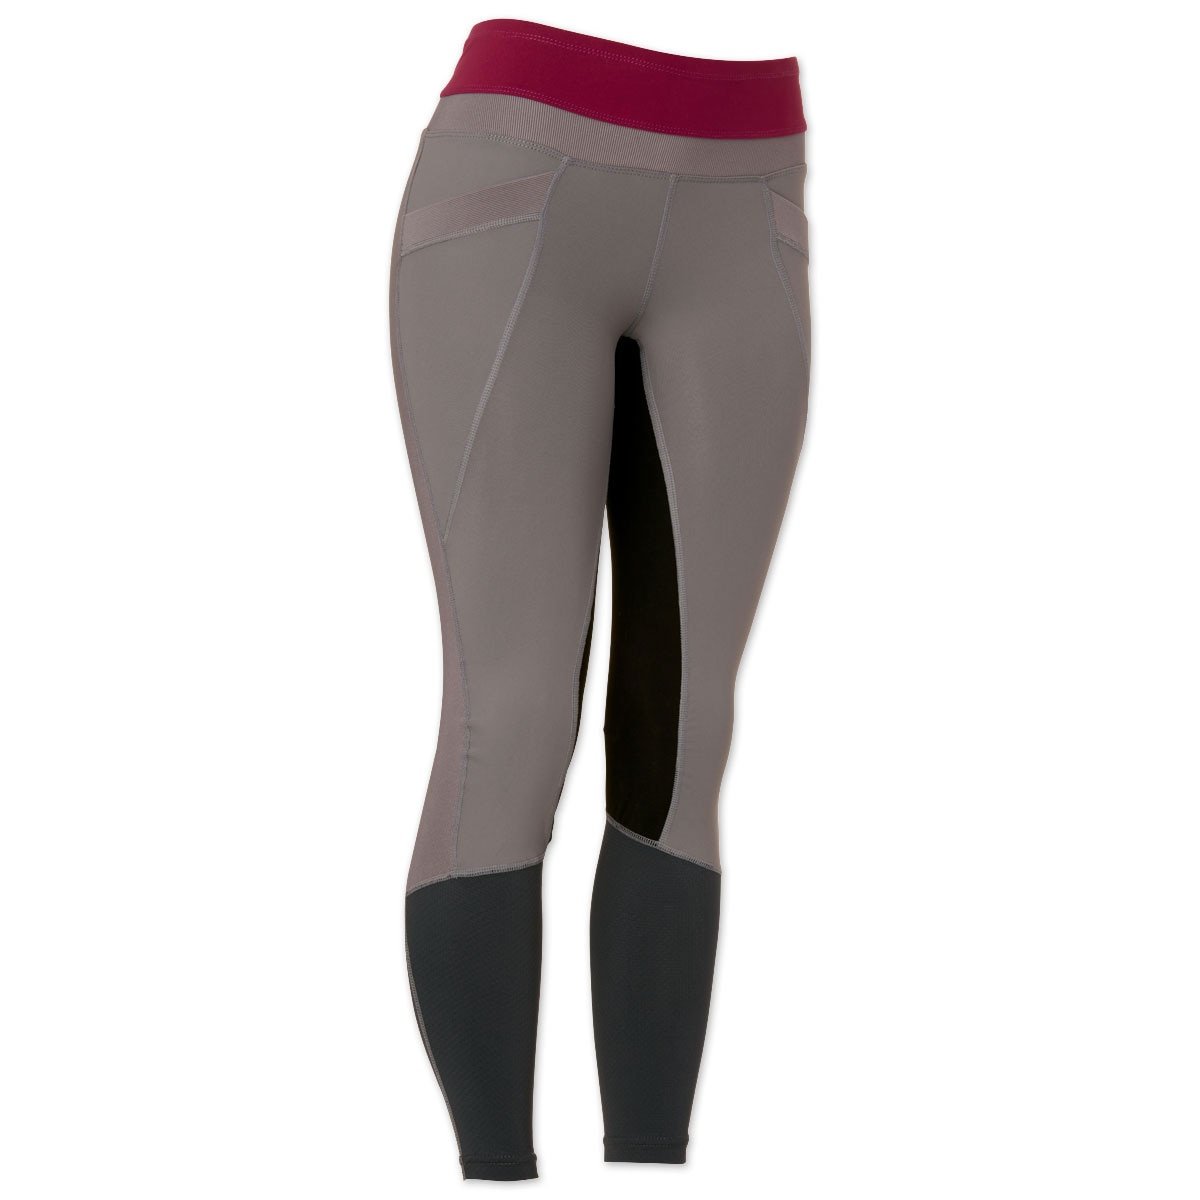 Irideon Synergy Full Seat Tights